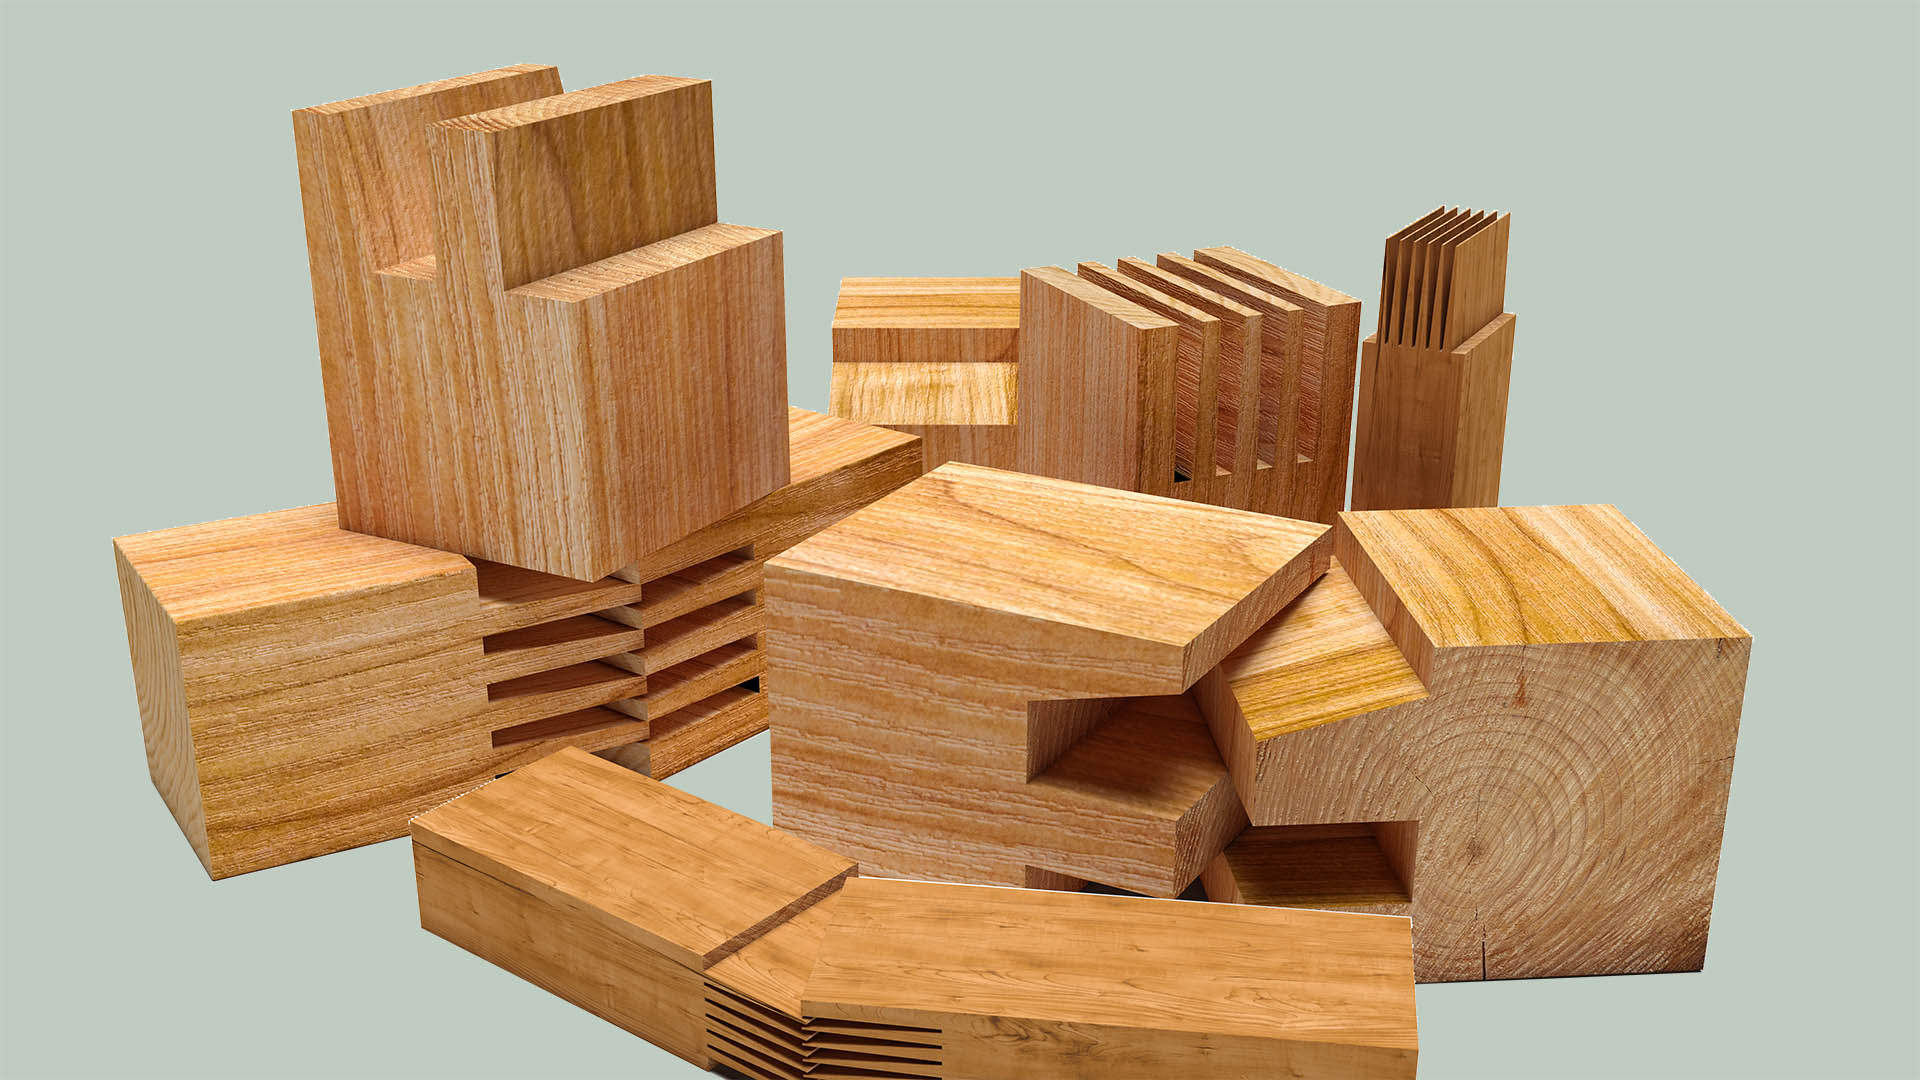 <br><br>Trends using wood